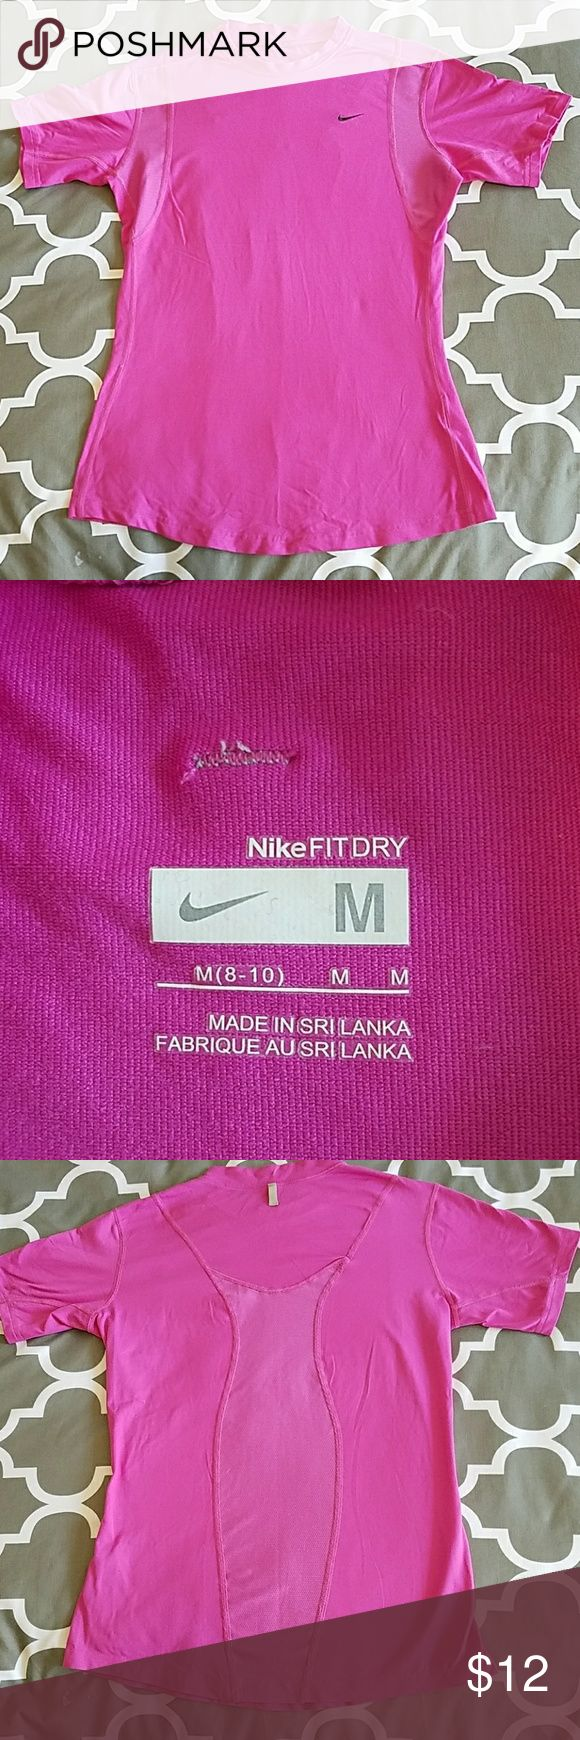 Nike Fit Fri shirt size med pink EUC Nike shirt in EUC ONLY worn once washed in cold line dried. Nice mesh at underarms and back to breathe. Nike Tops Tees - Short Sleeve